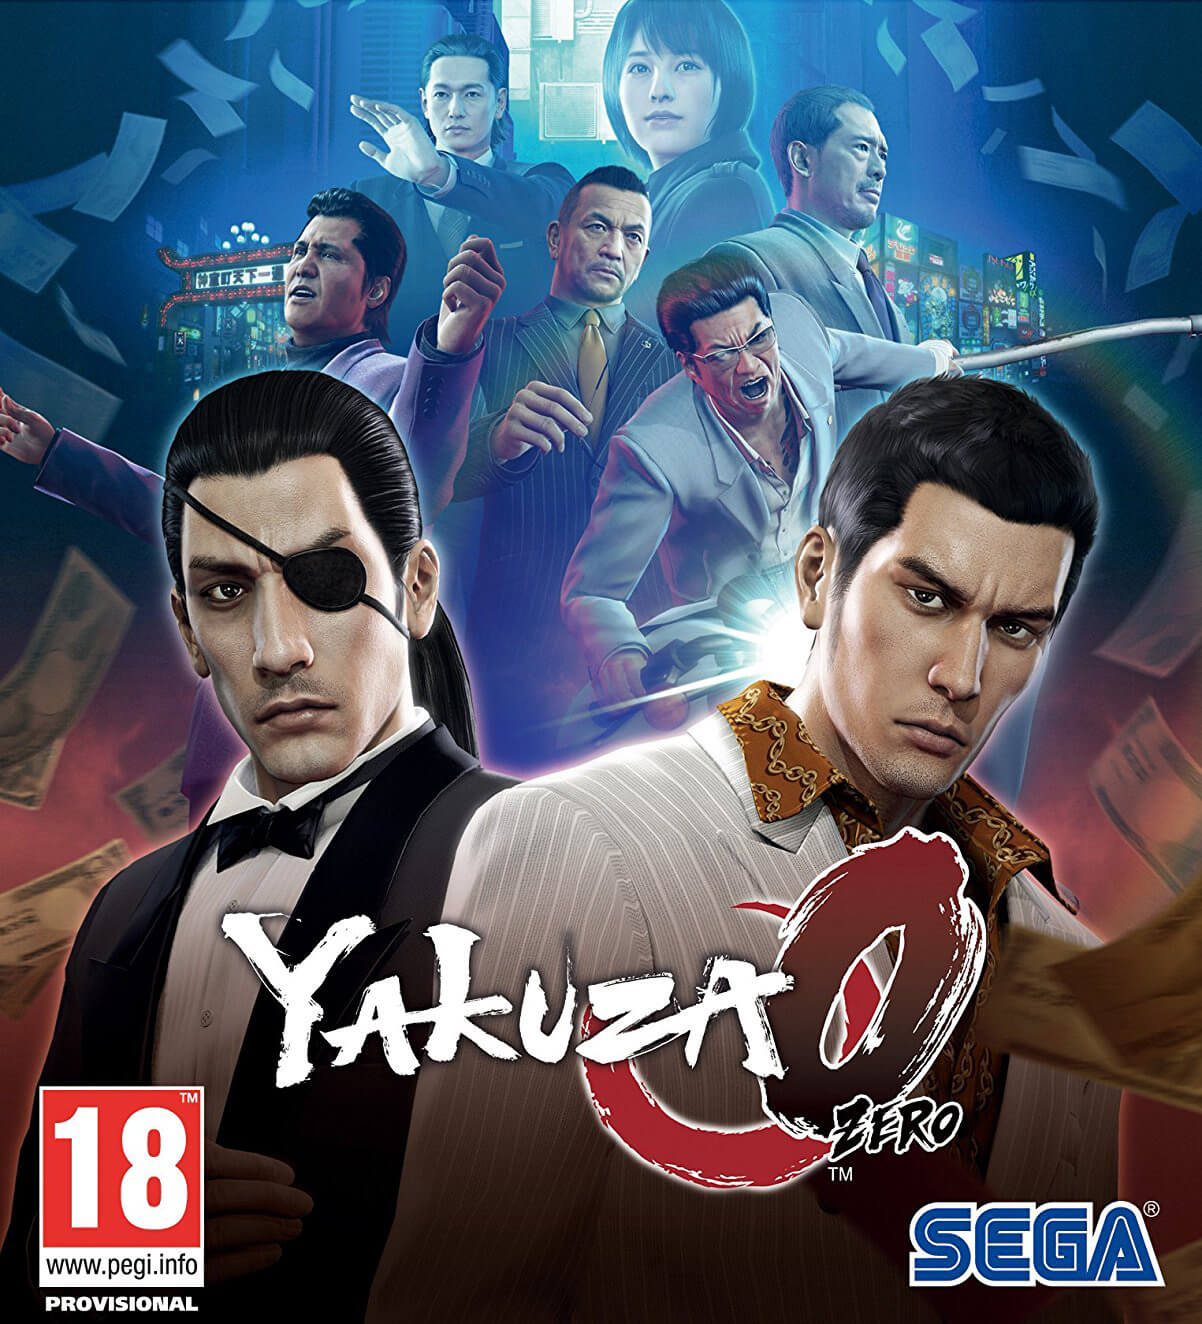 https://img5.downloadha.com/hosein/files/2018/12/Yakuza-0-pc-cover-large.jpg